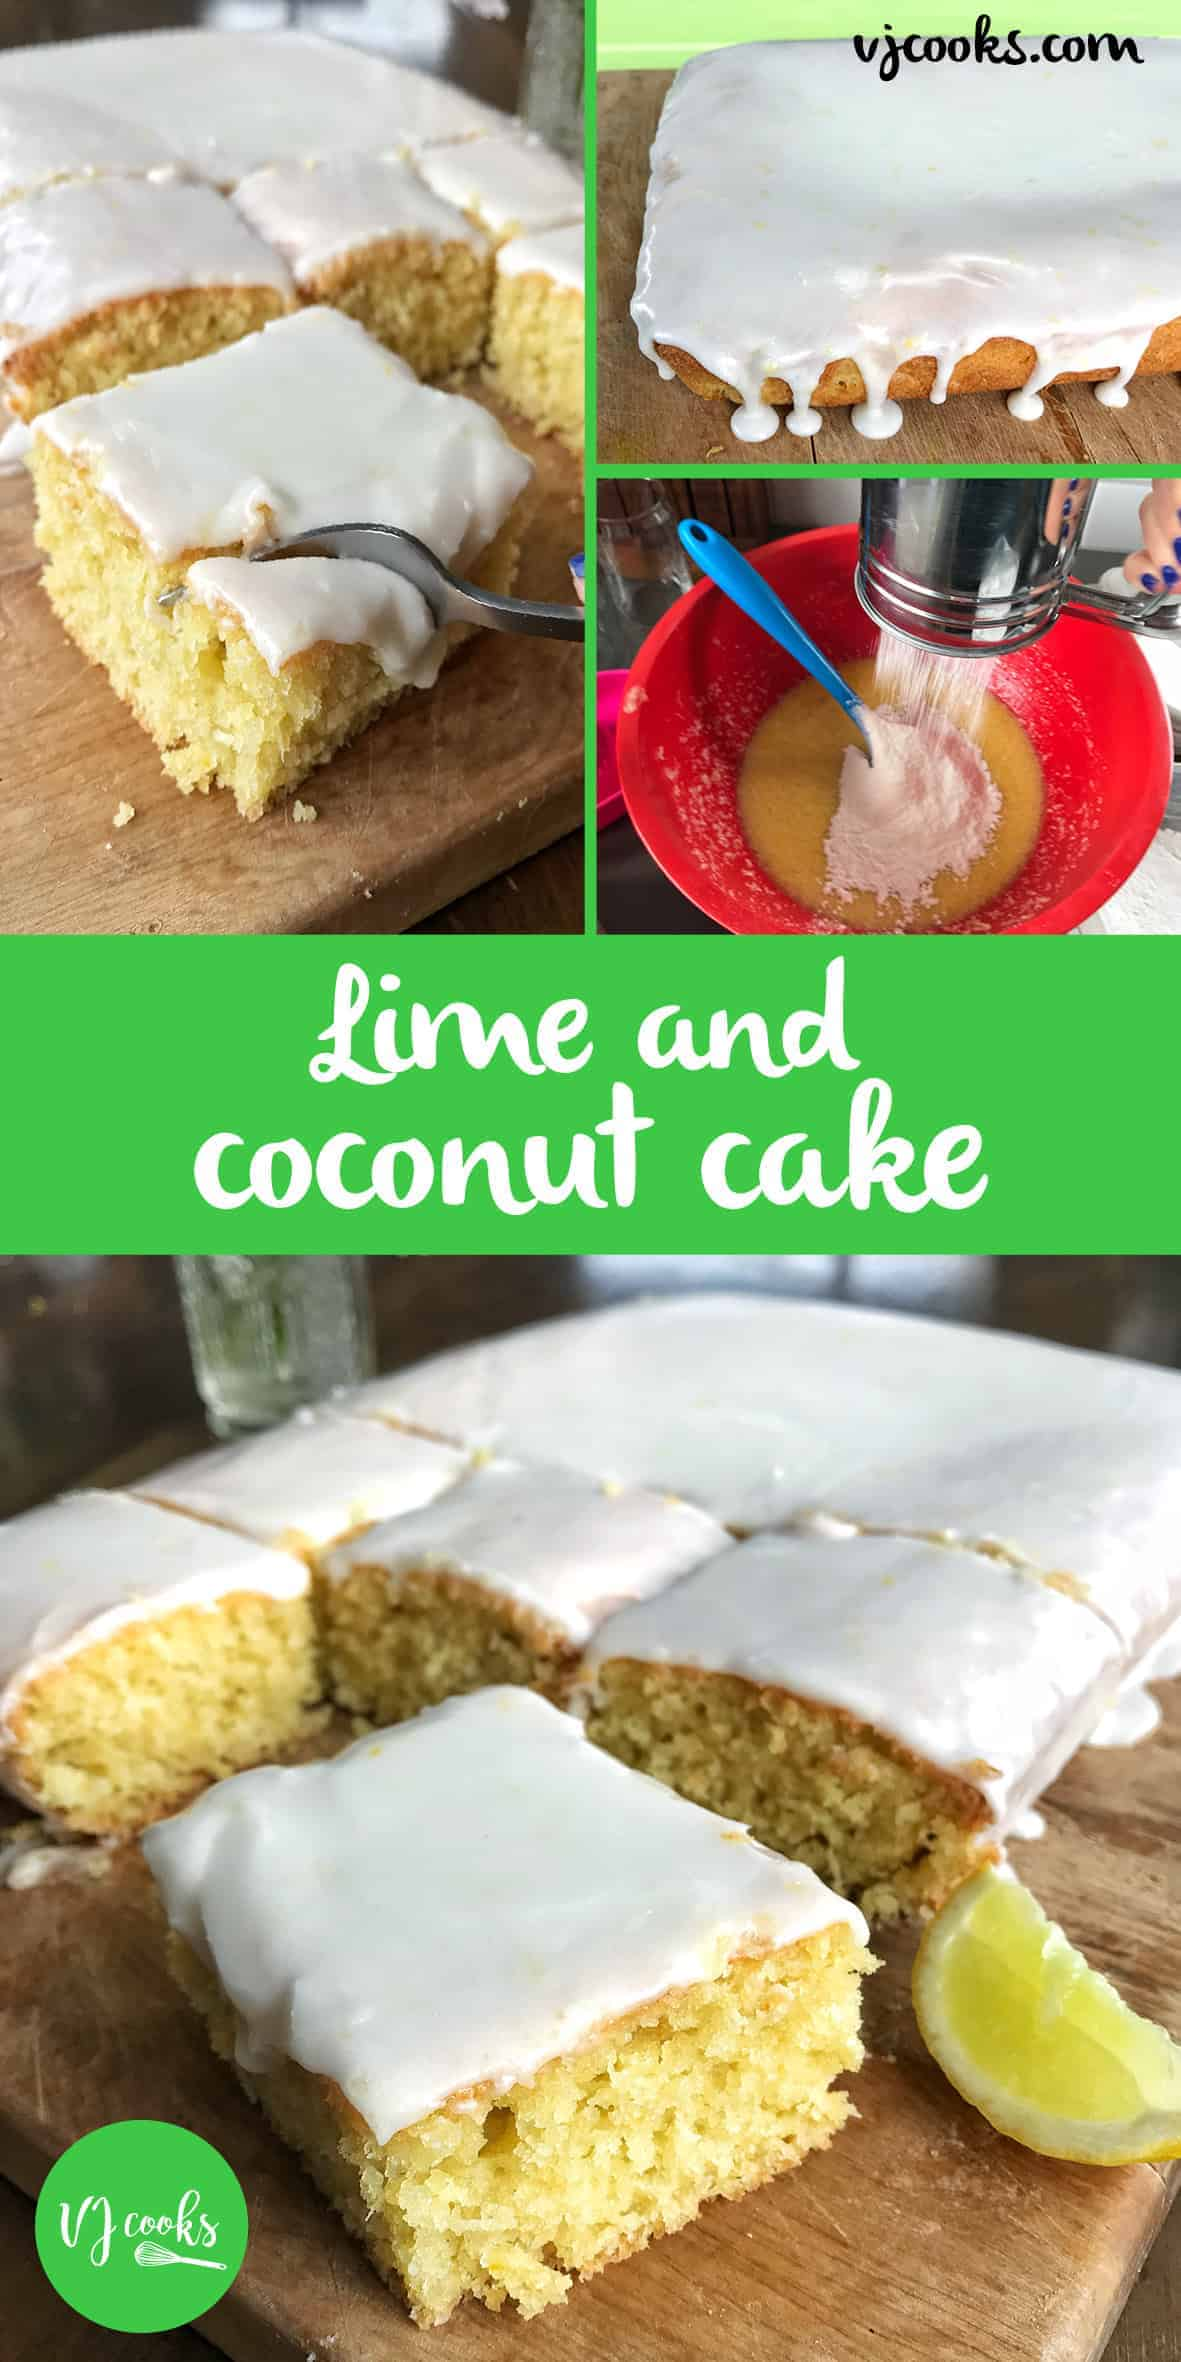 Dairy-free lime and coconut cake, easy recipe from VJ cooks. Lime and coconut sheet cake, lime and coconut tray cake. dairy free coconut and lime cake. Lemon and coconut cake. #limesheetcake #vjcooks #limeandcoconut